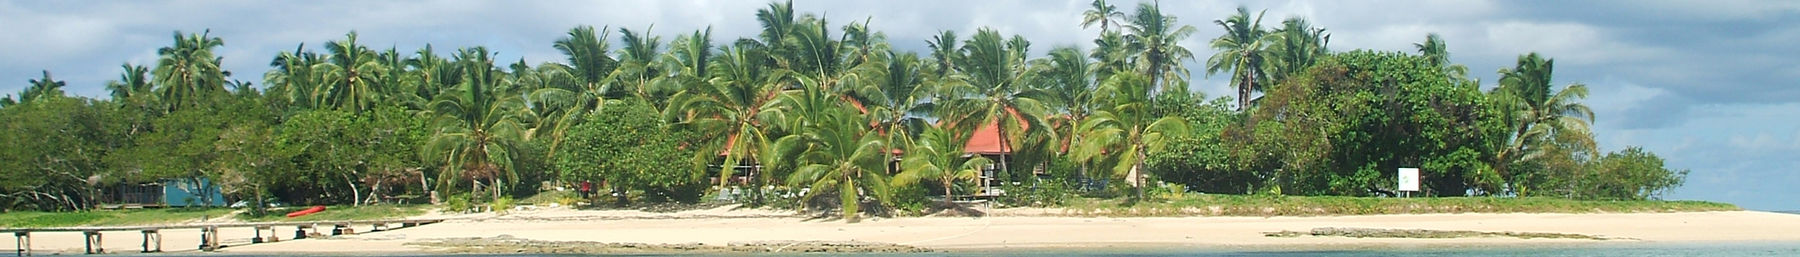 Tonga banner Beach with palms.jpg